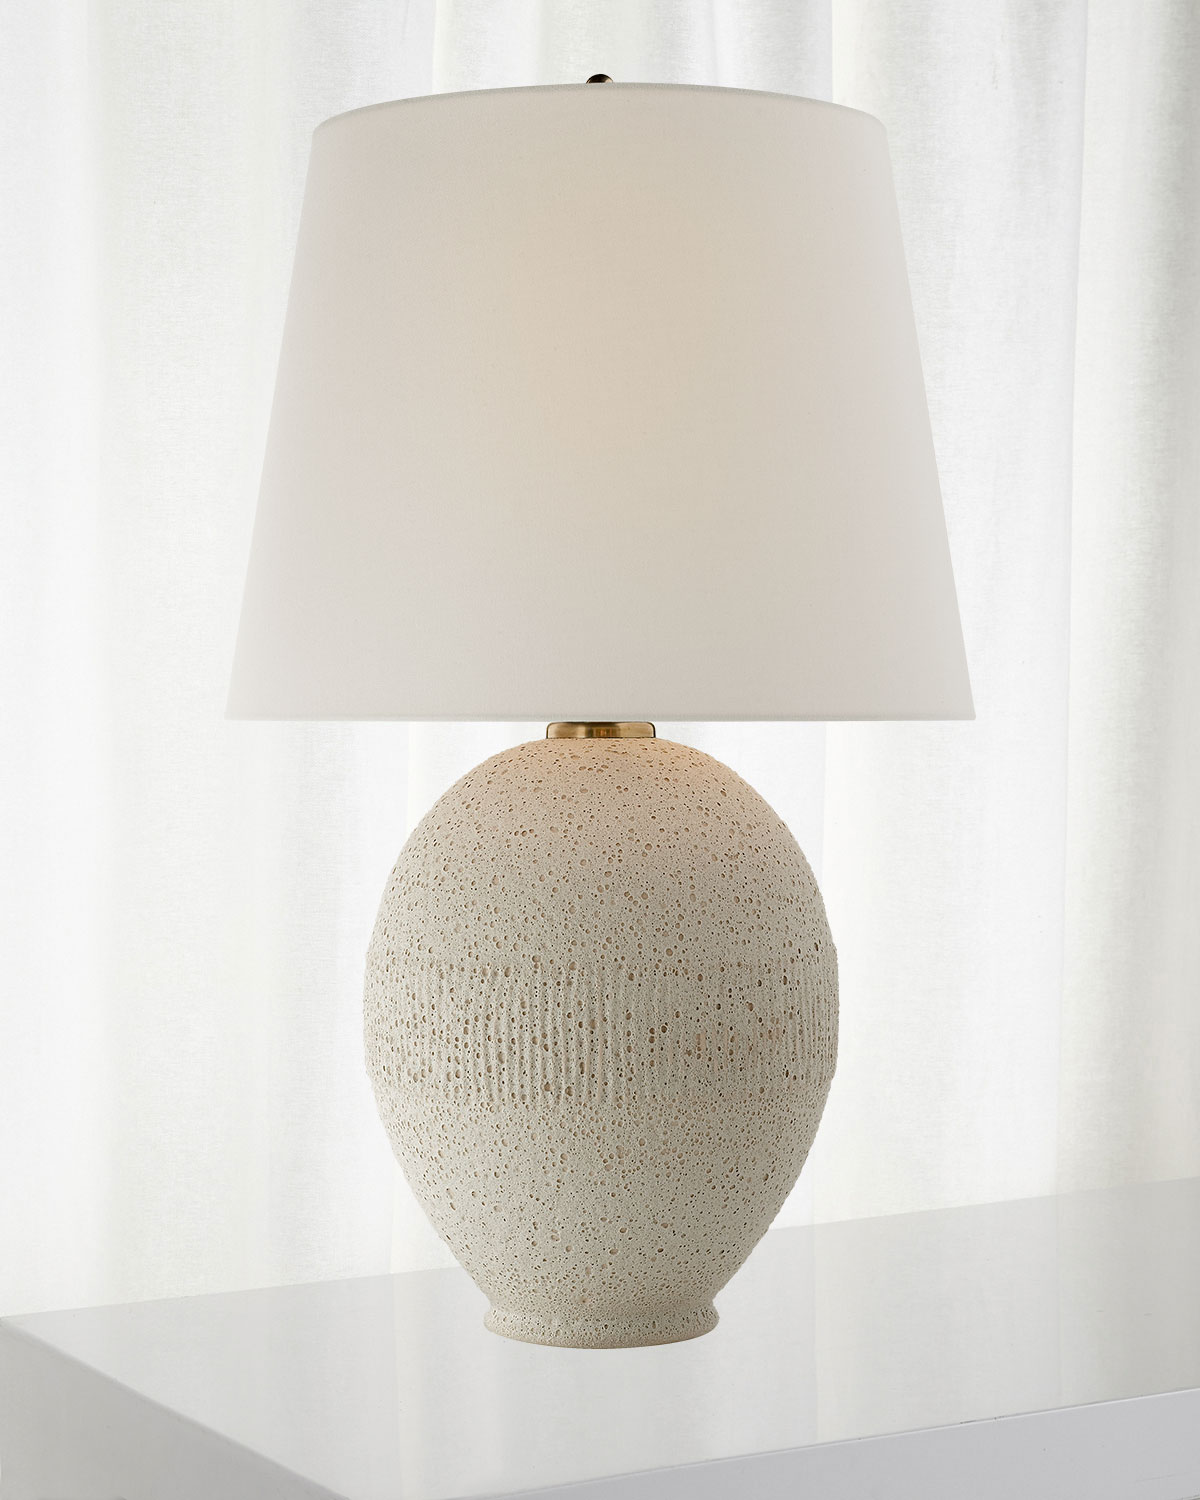 Aerin Home decors TOULON TABLE LAMP